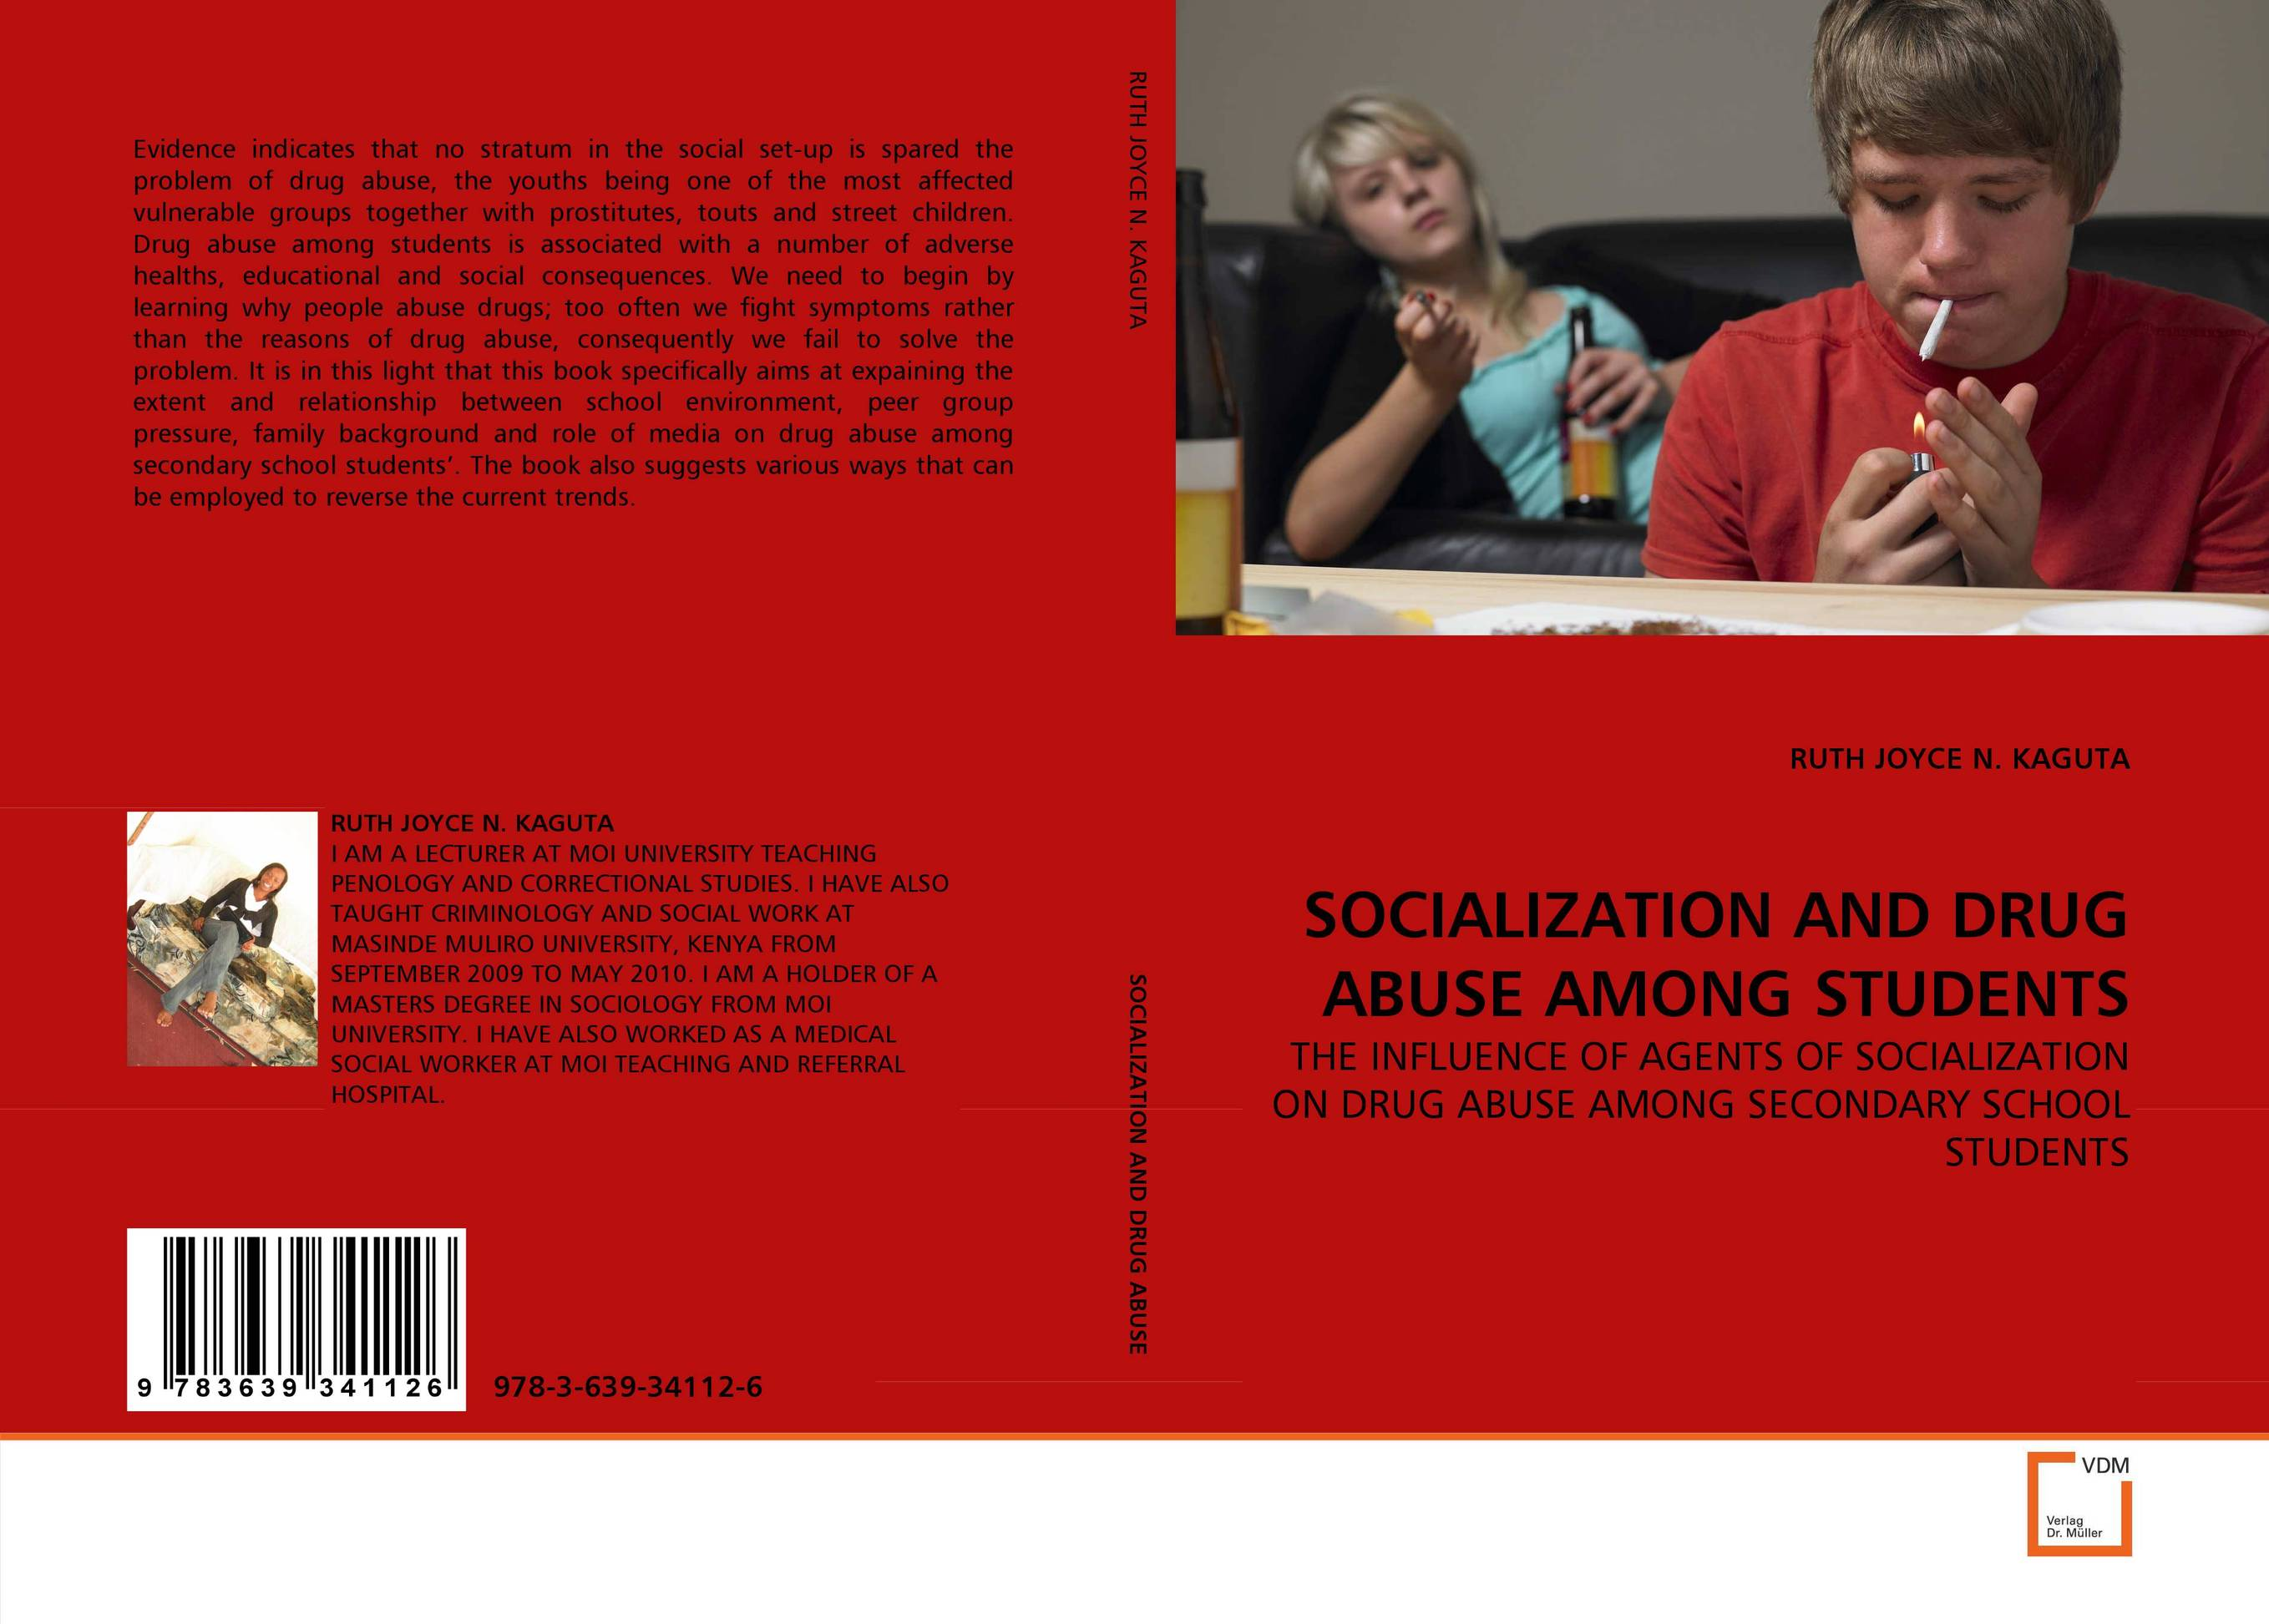 SOCIALIZATION AND DRUG ABUSE AMONG STUDENTS do snps underlie drug abuse and cardiac disease comorbidity